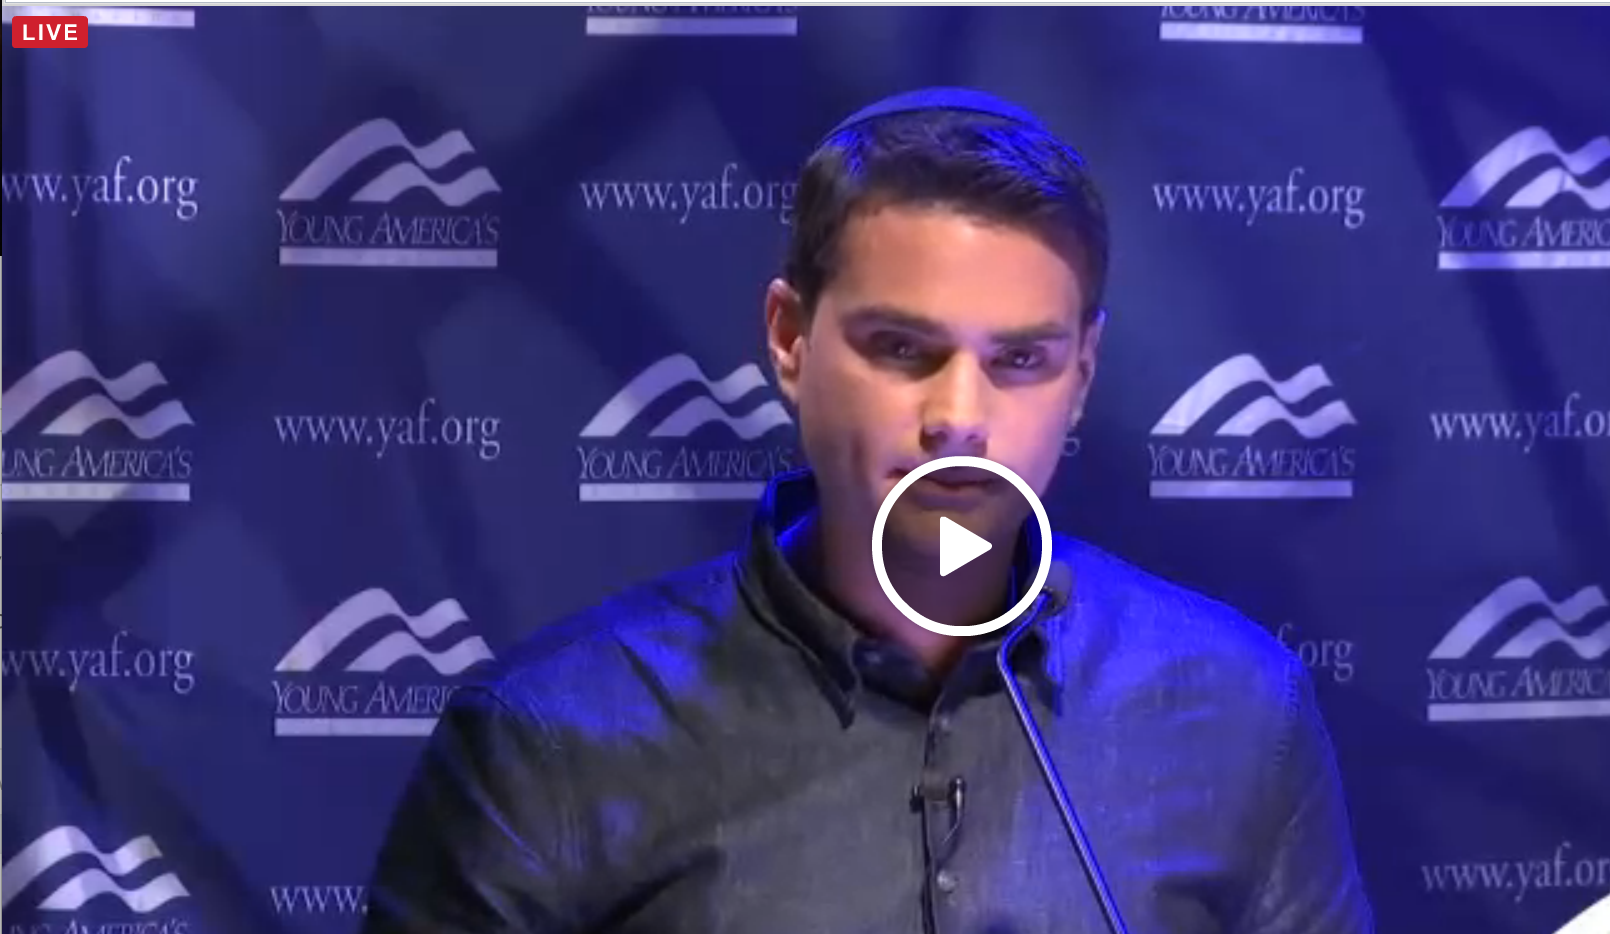 Breaking College Banned Ben Shapiro From Speaking Caves Things Get Crazy Liberal Education College Campus Fascist